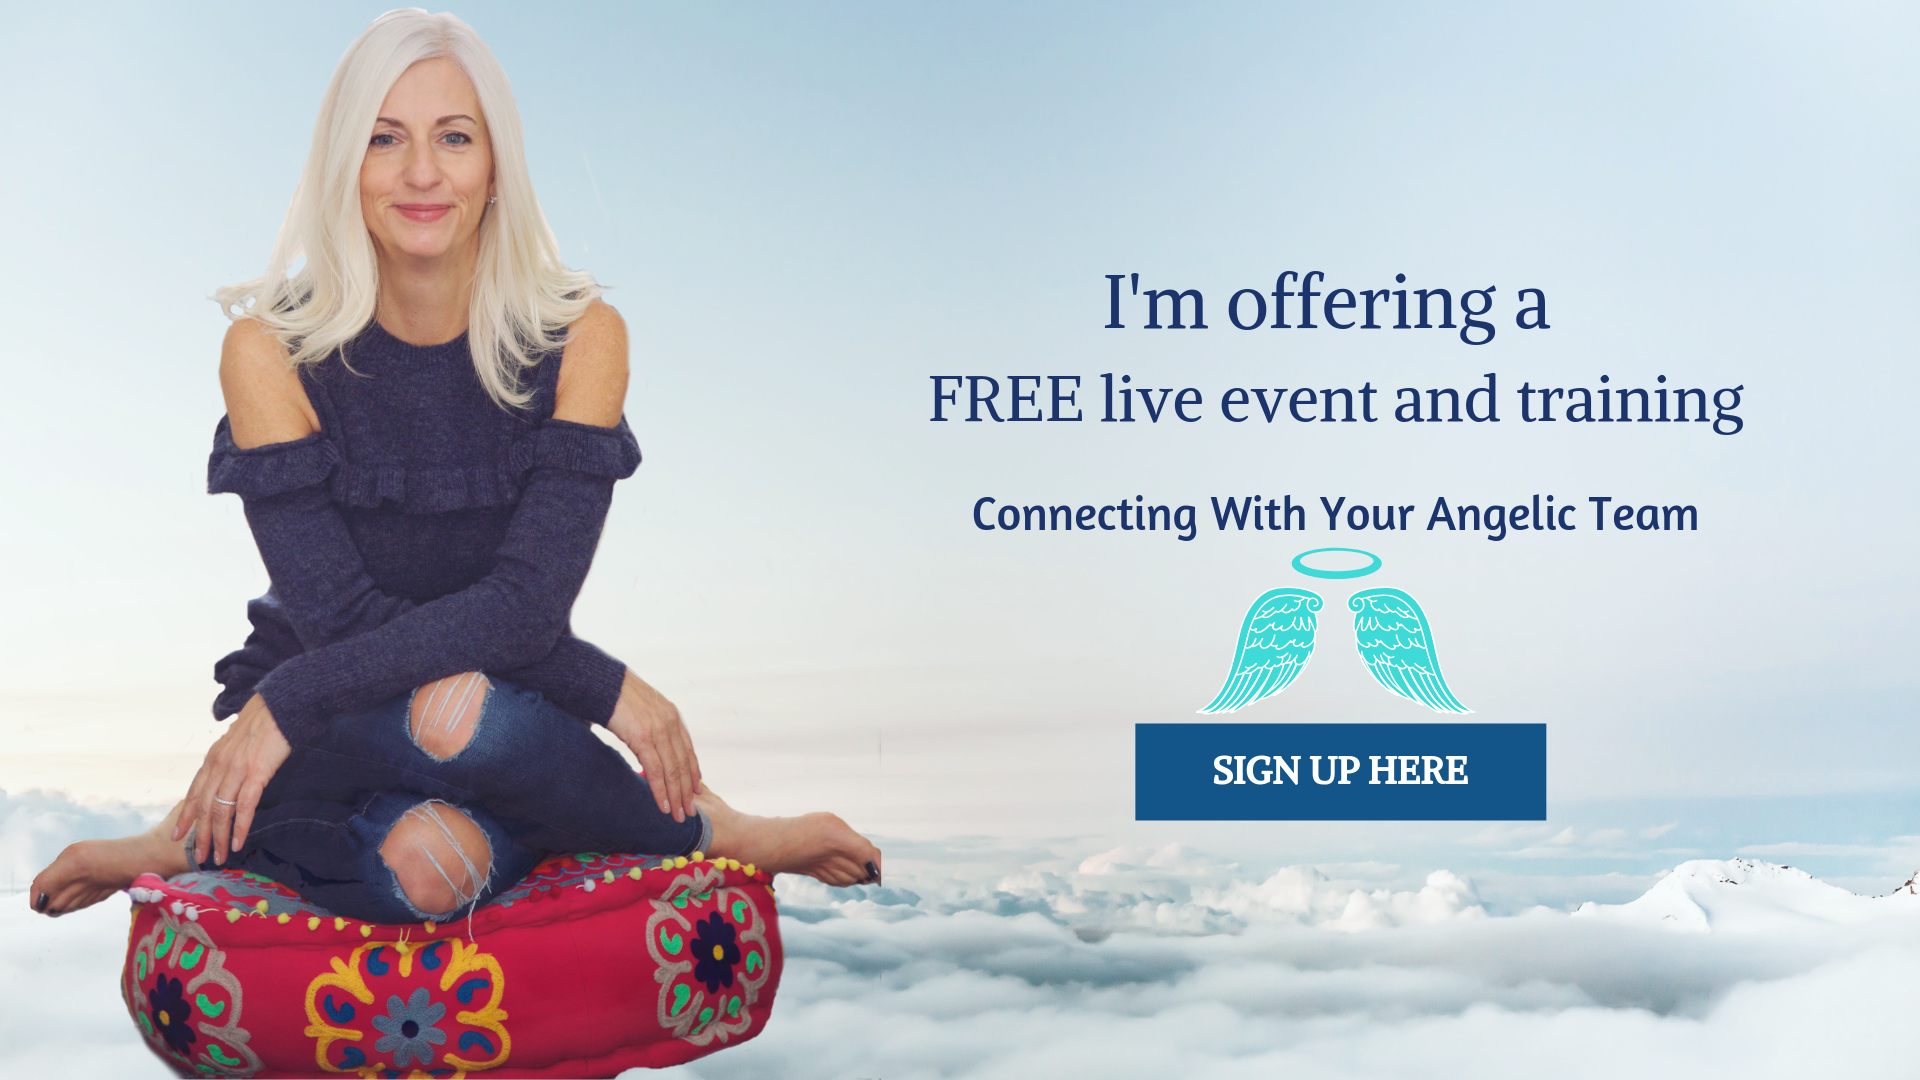 free training connecting with your angelic team